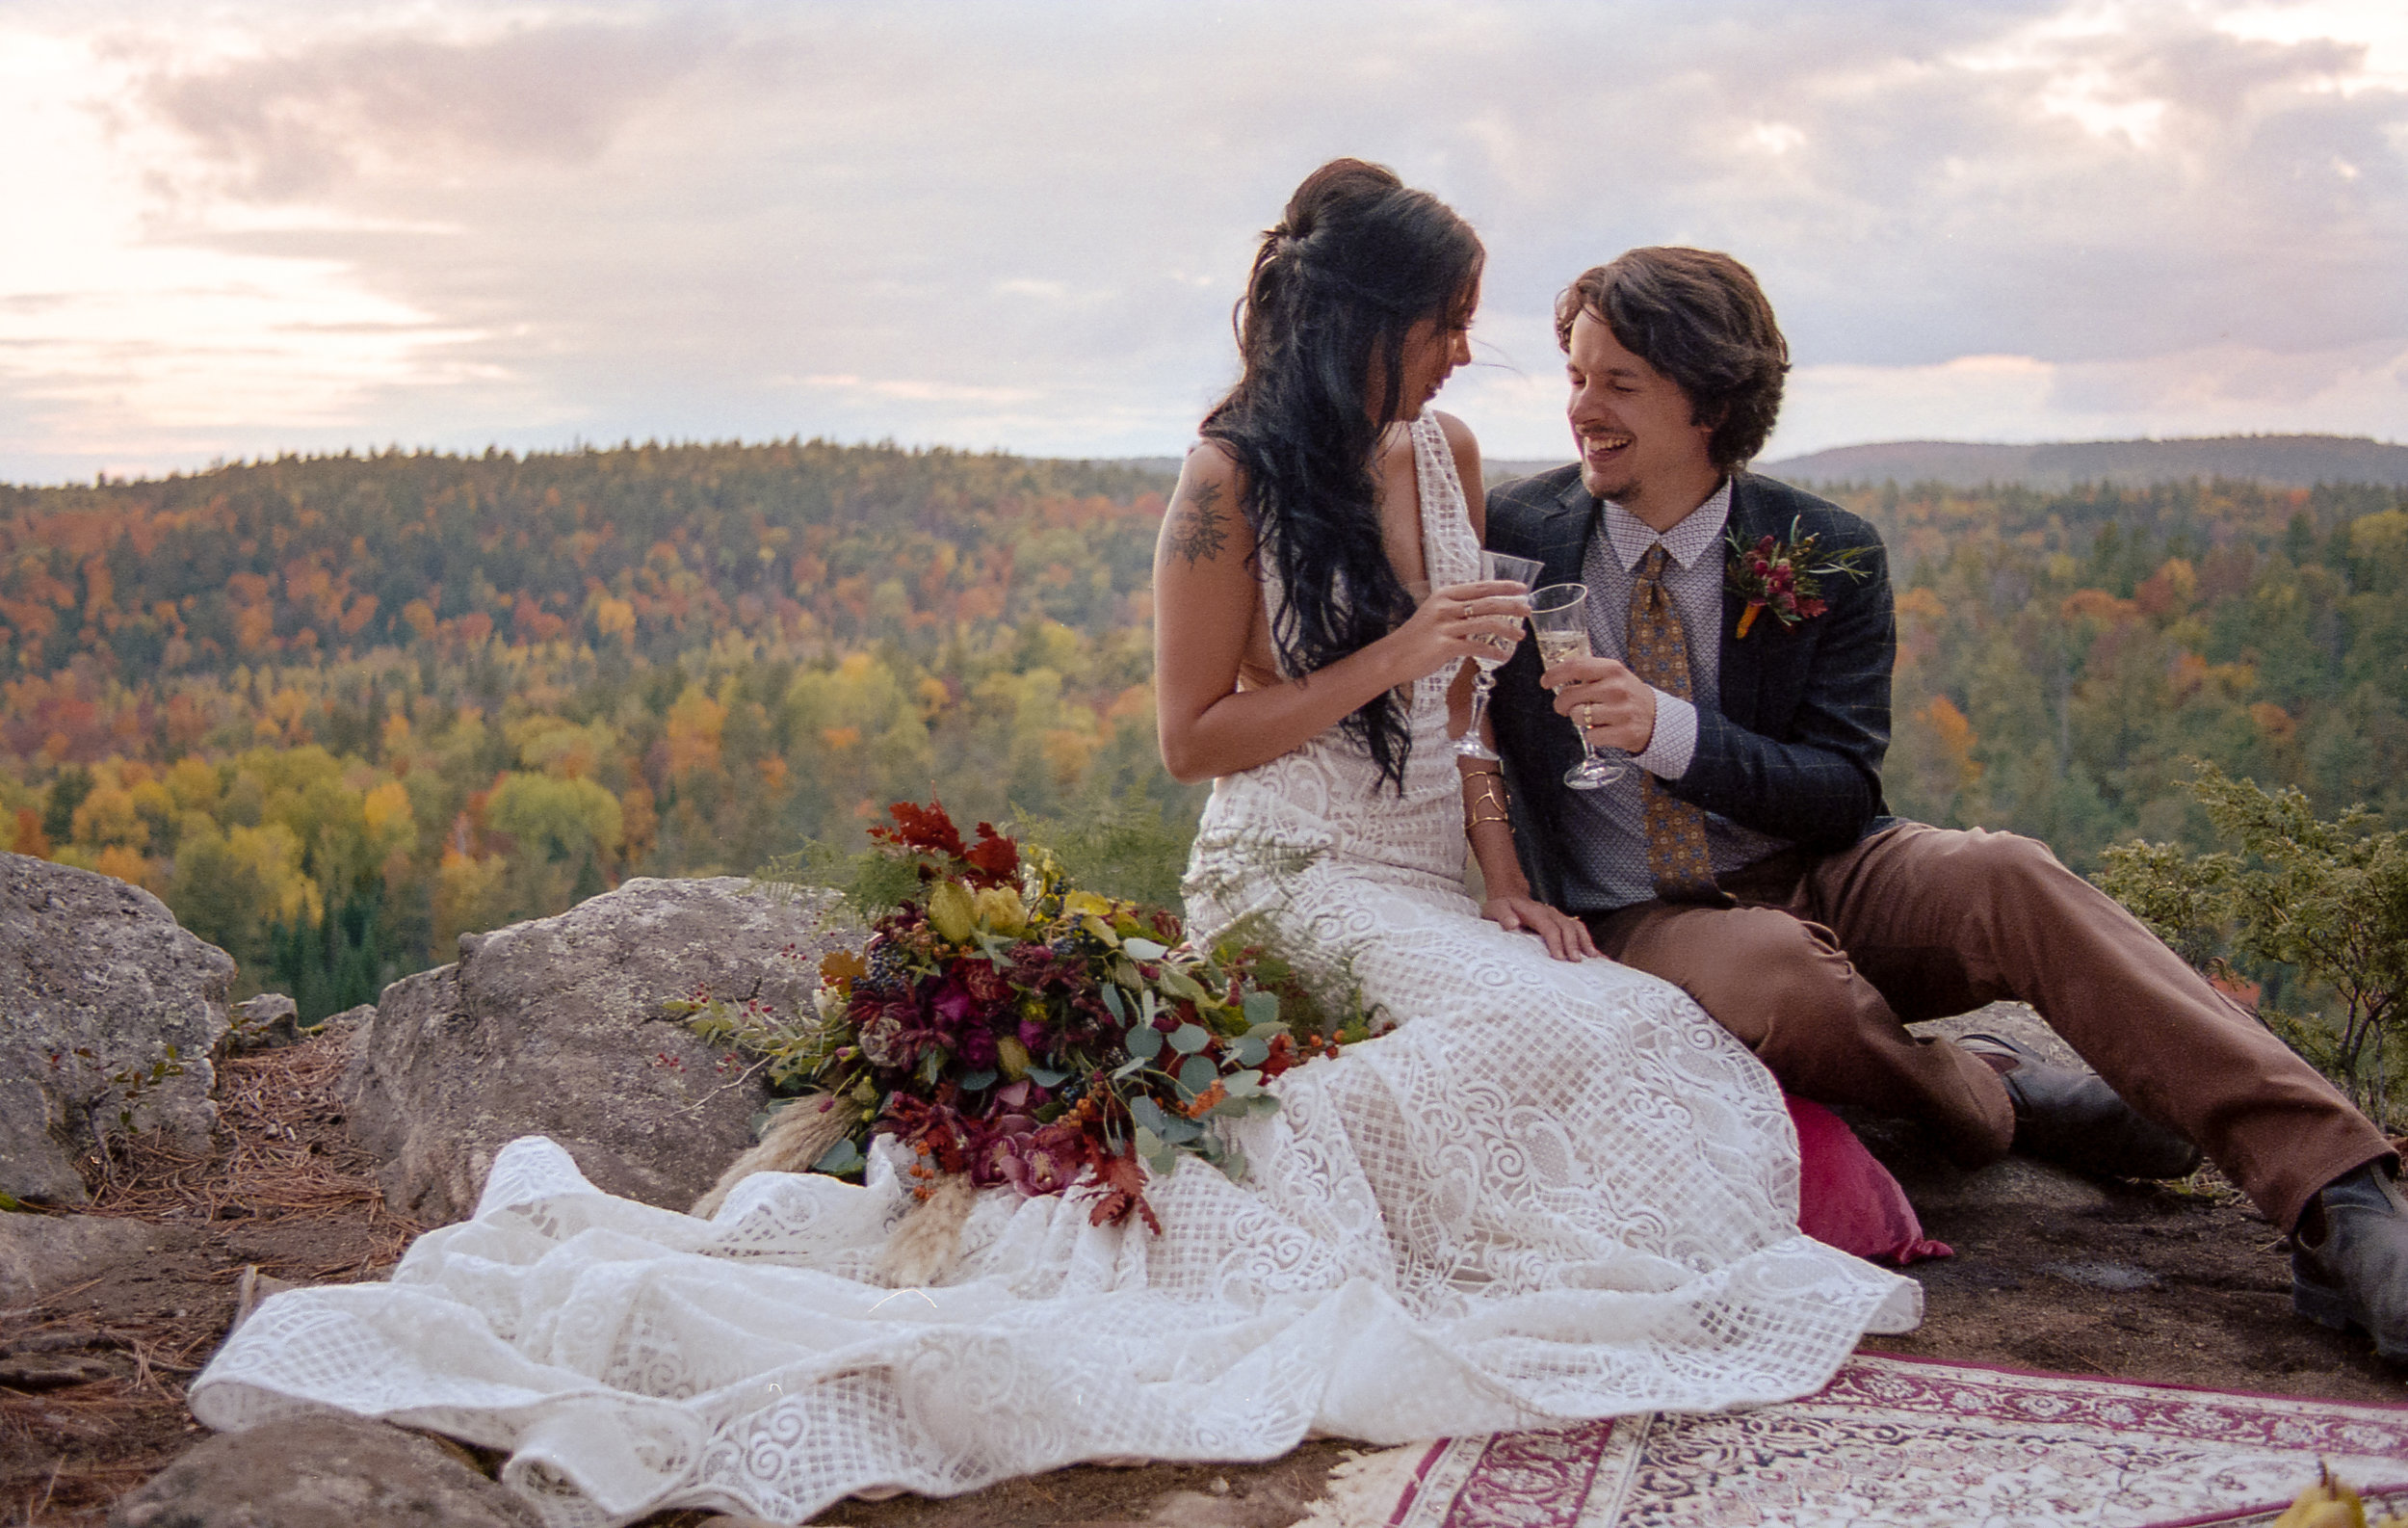 Elopement in the Capital - Within 150km of Ottawa$20004 hours wedding day coverageConsultation & PlanningDelivery of edited digital images in an online galleryFull printing rights40 minute engagement session$100 print credit